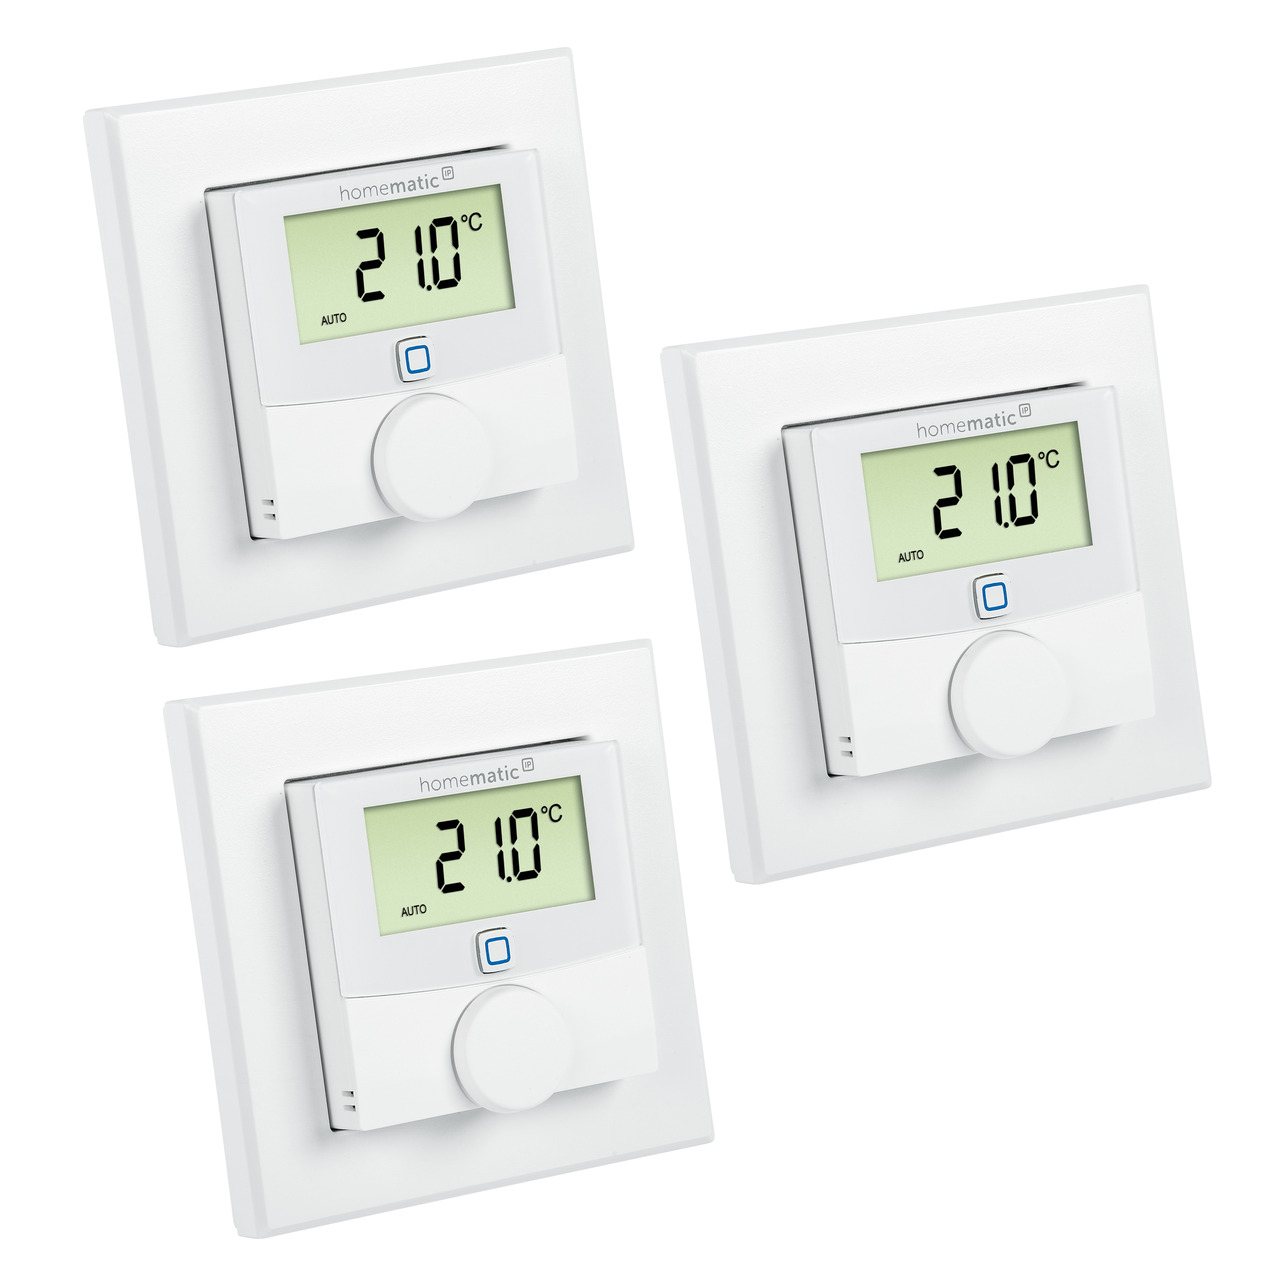 Homematic IP Smart Home 3er Set Wandthermostat HmIP-WTH-2 mit Luftfeuchtigkeitssensor